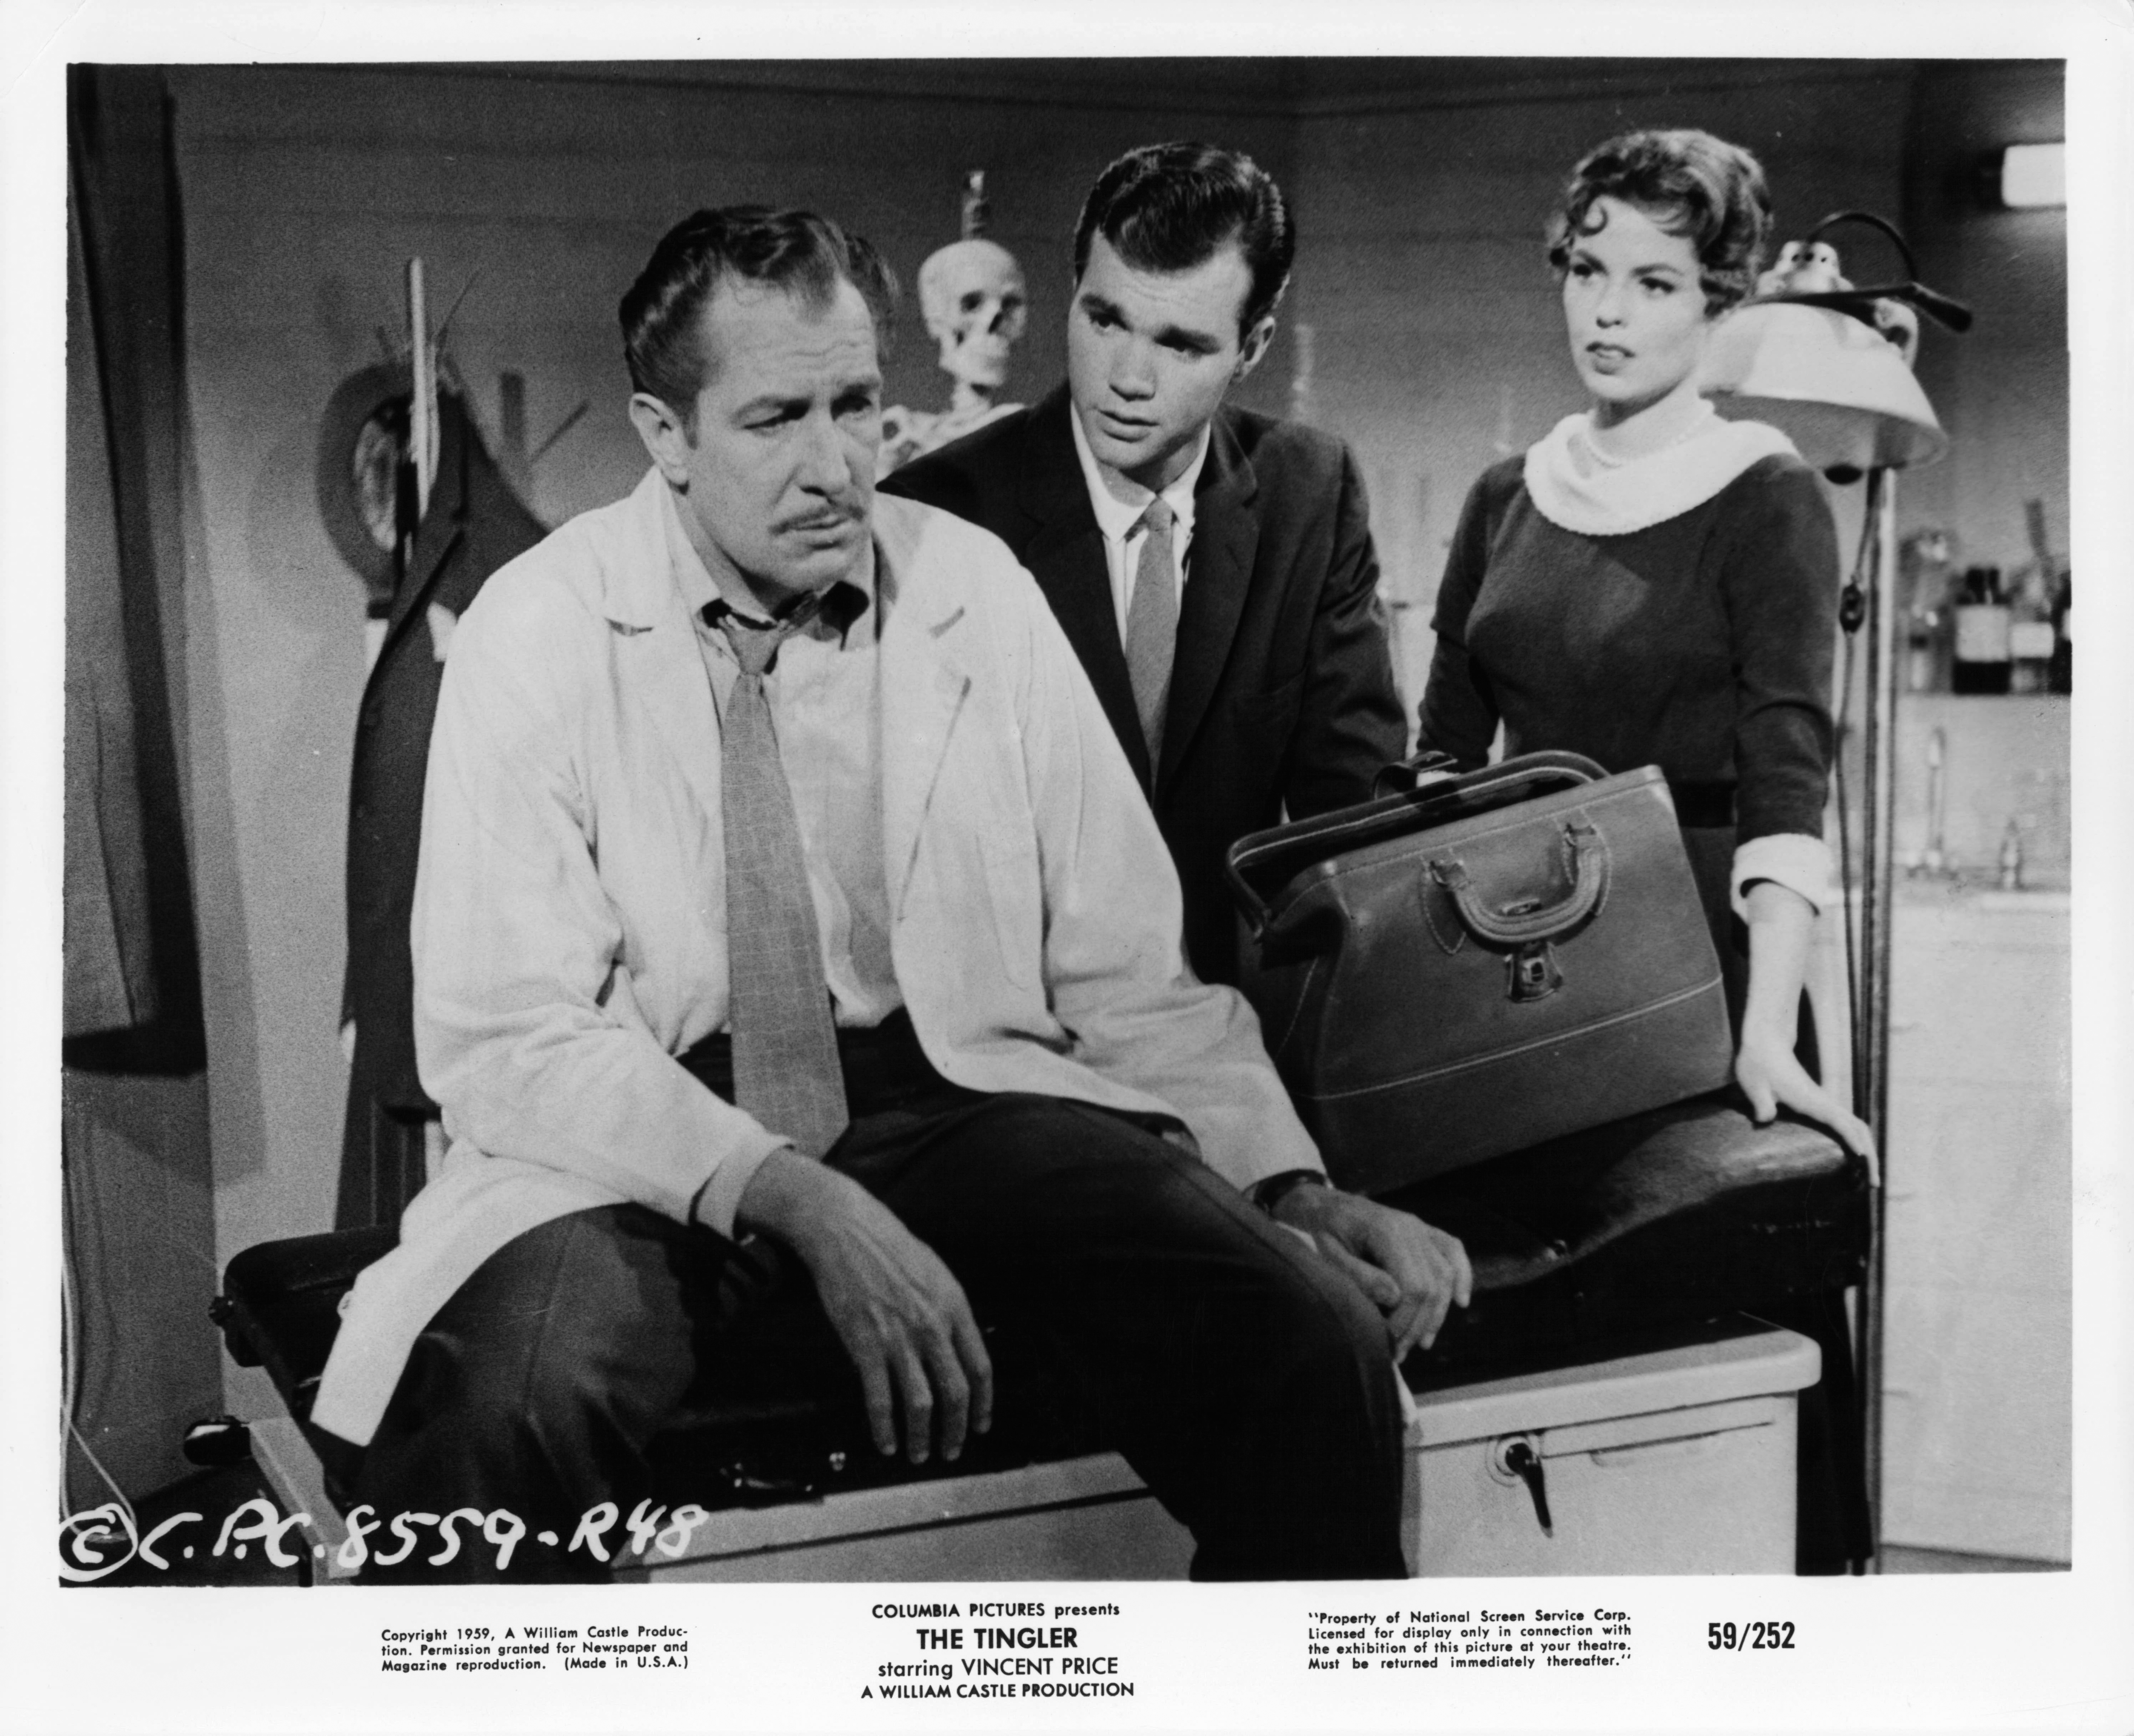 Vincent Price, Darryl Hickman, and Pamela Lincoln in The Tingler (1959)